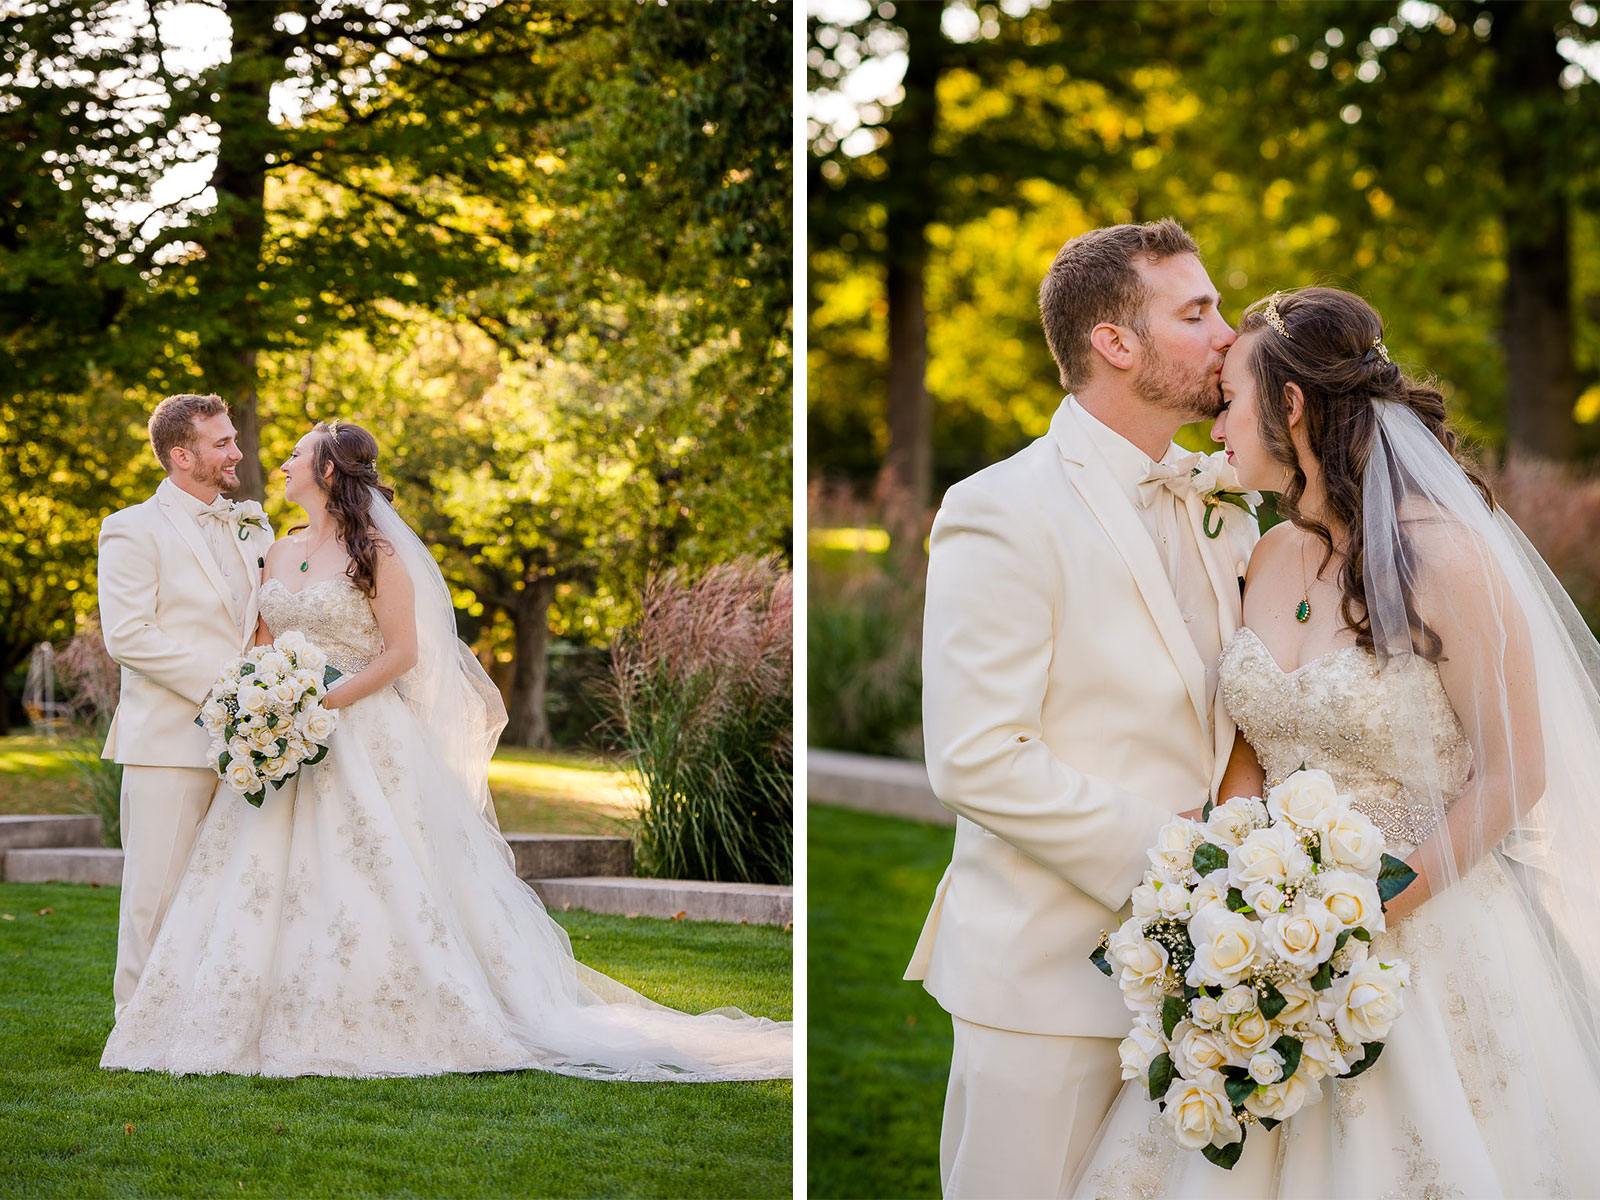 Eric_and_Christy_Photography_Blog_Wedding_Eva_Andrew-28-29